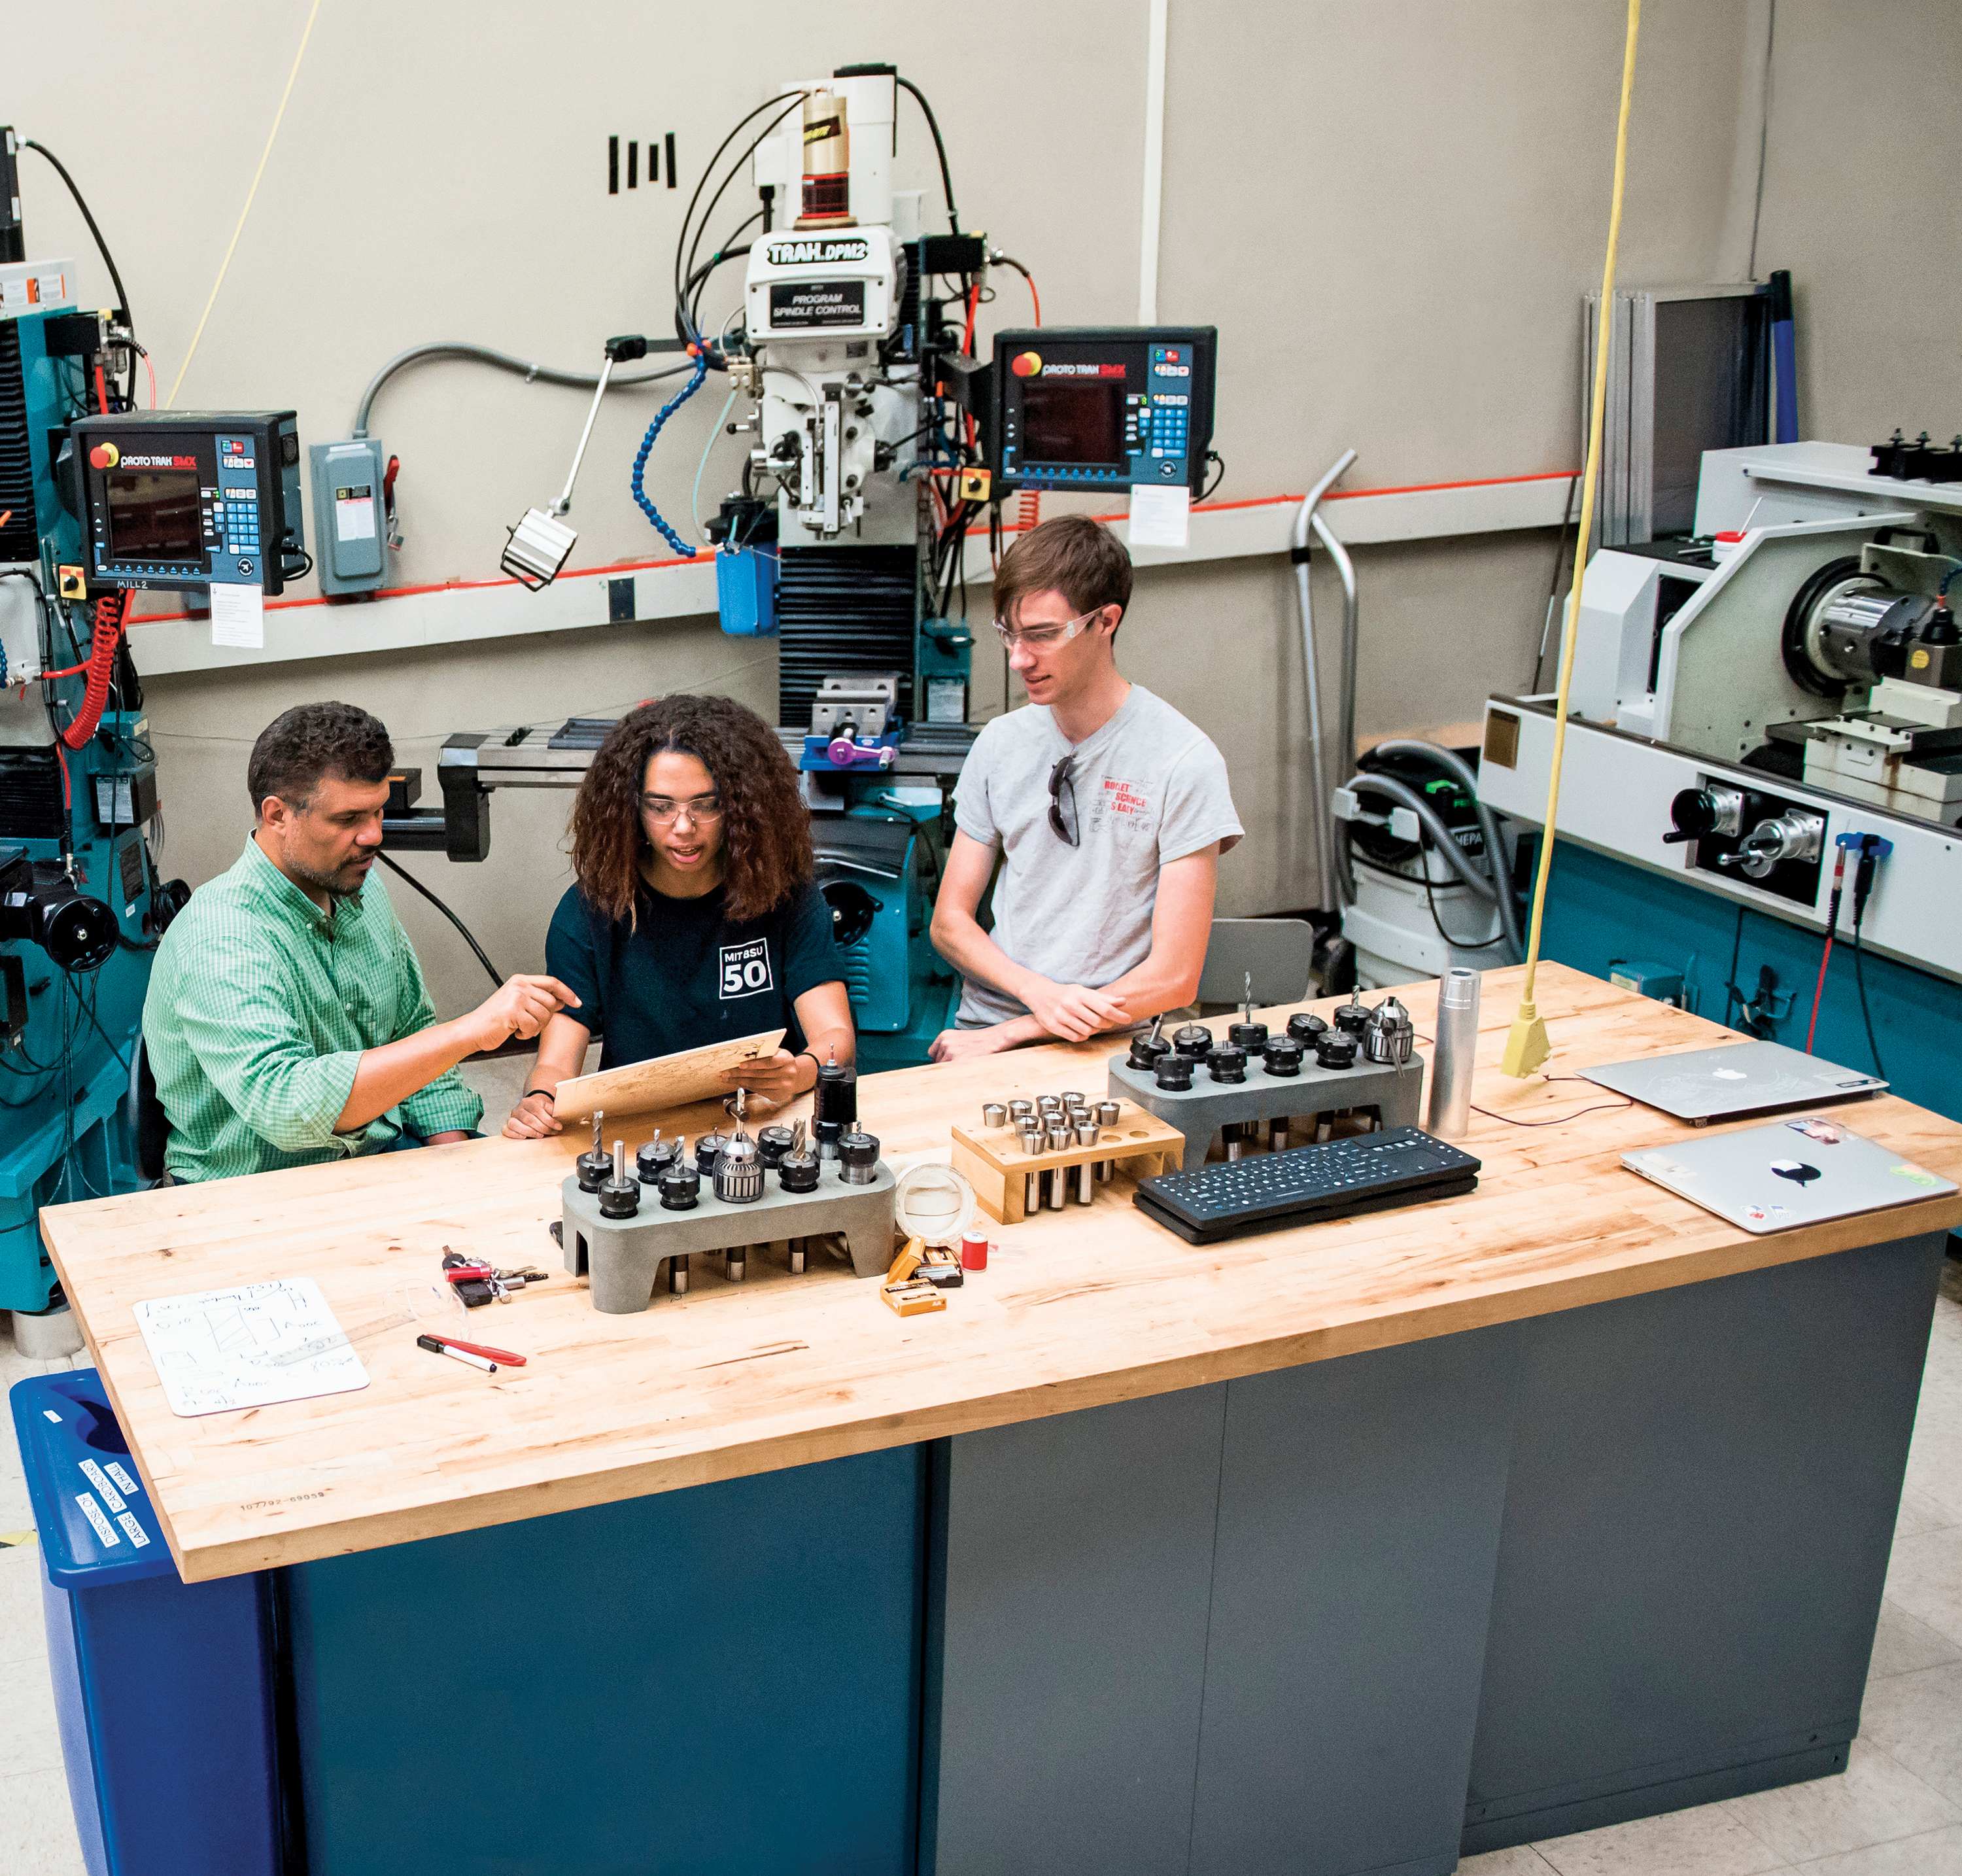 image of three people working in a makerspace